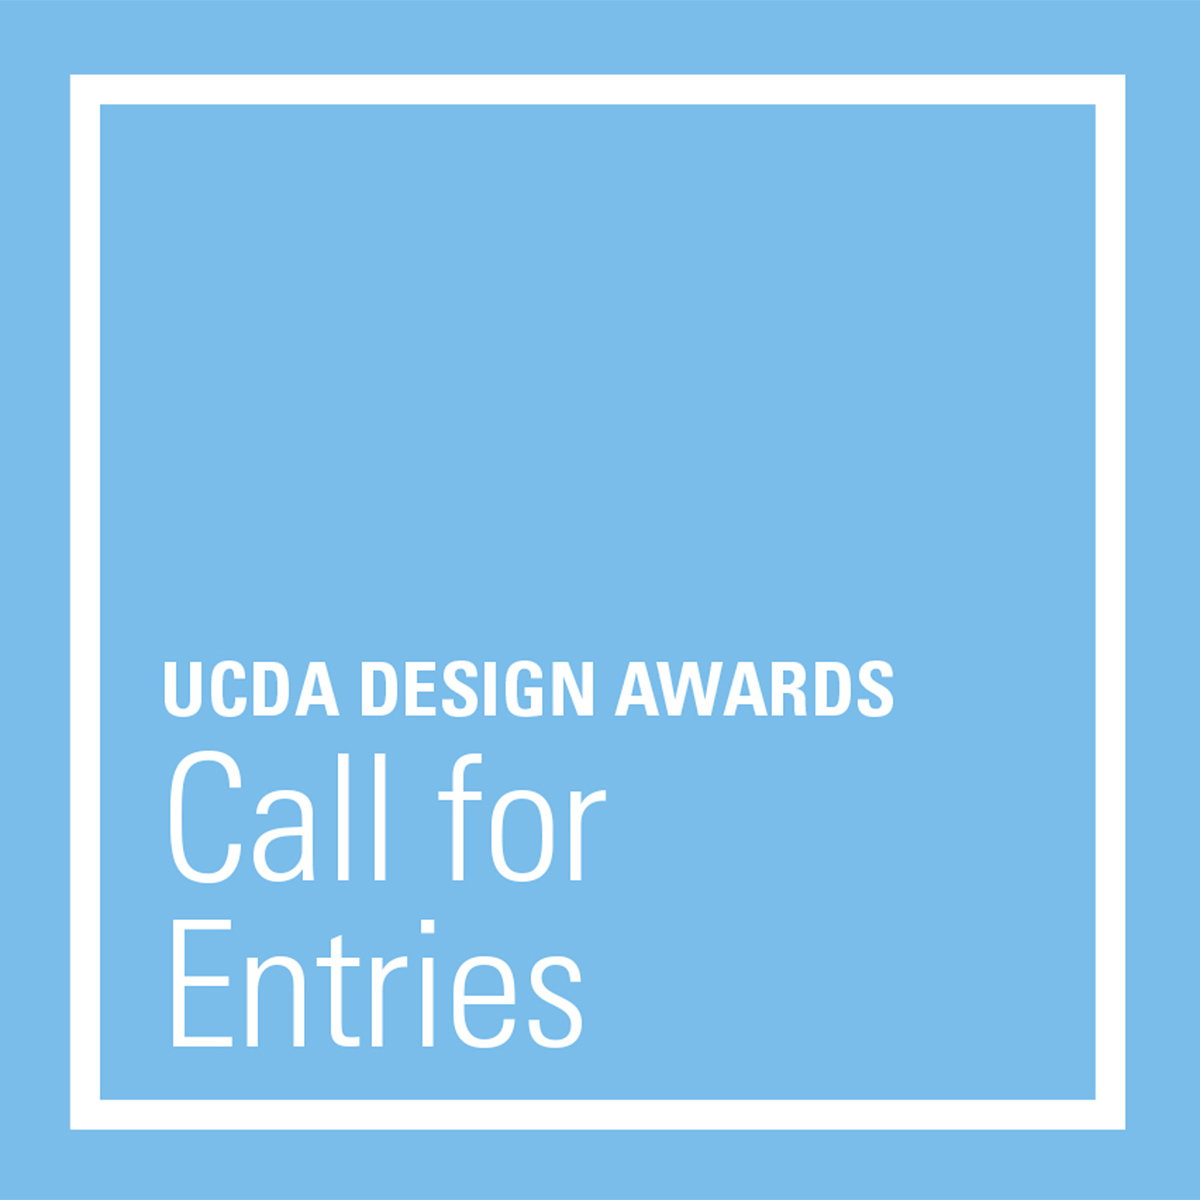 UCDA Design Awards 2020